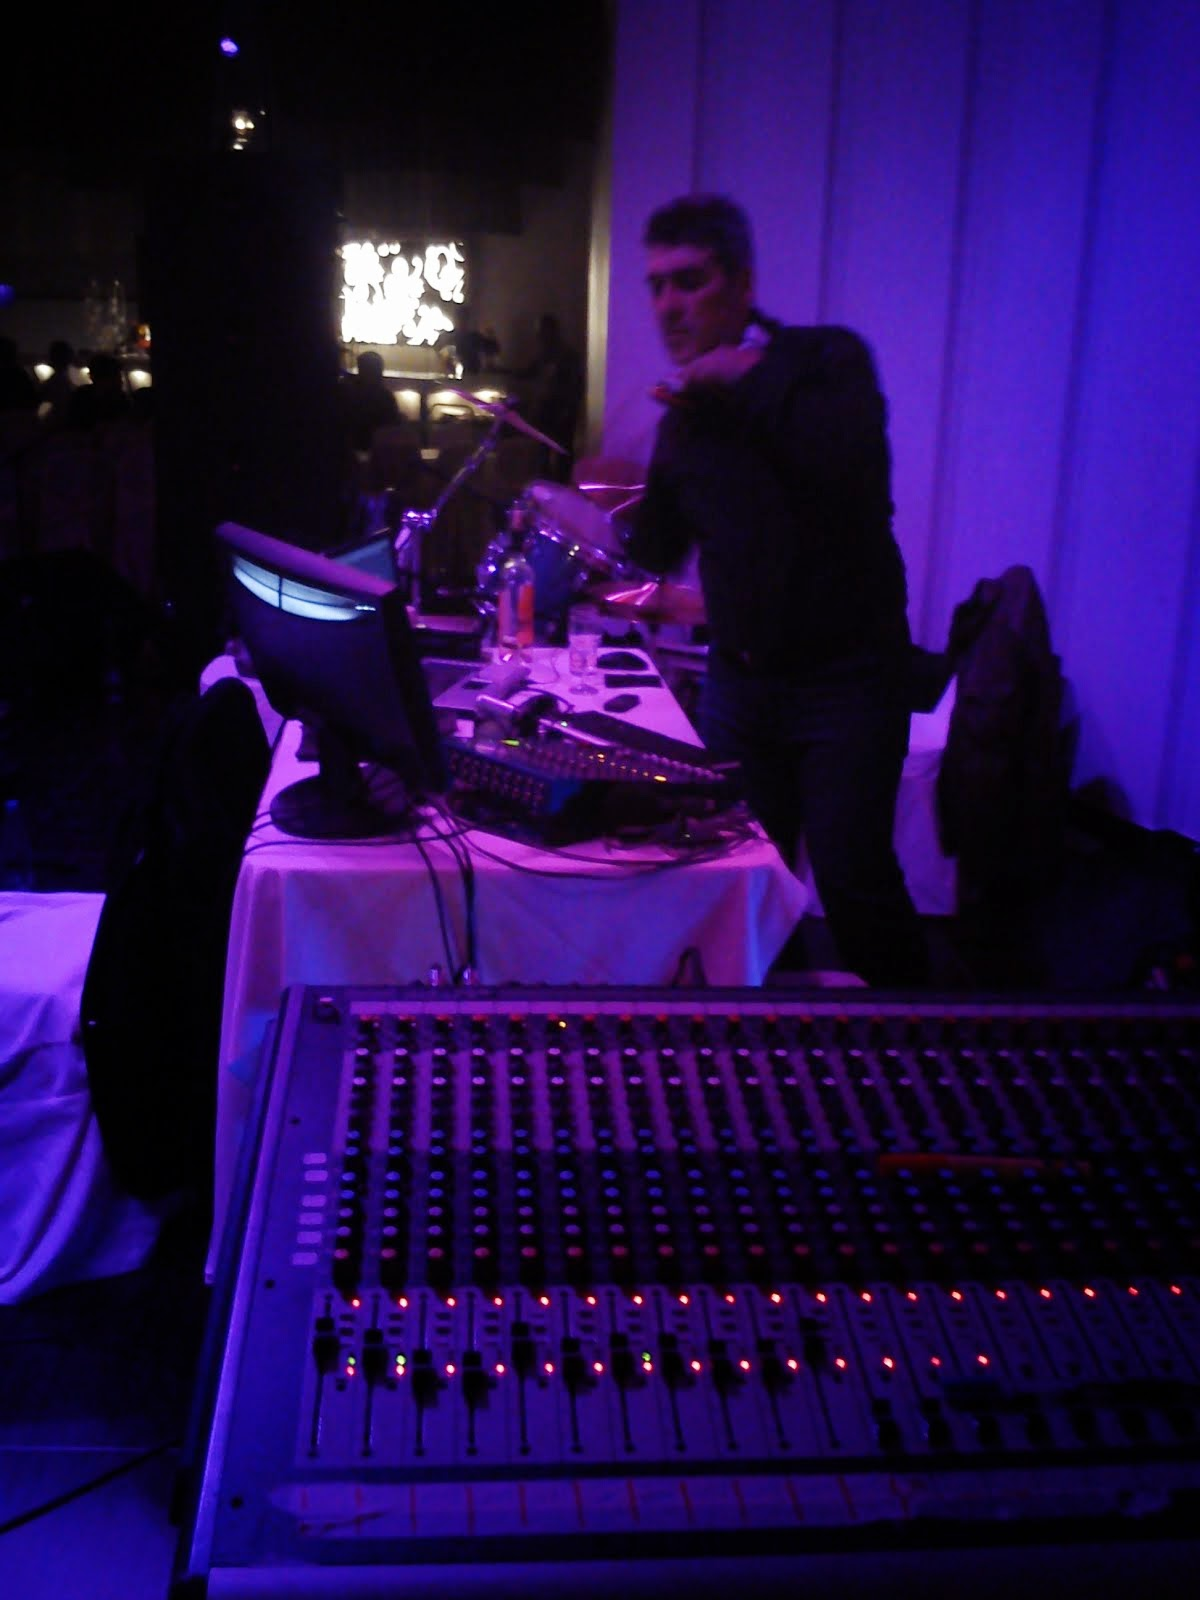 ilias on decks